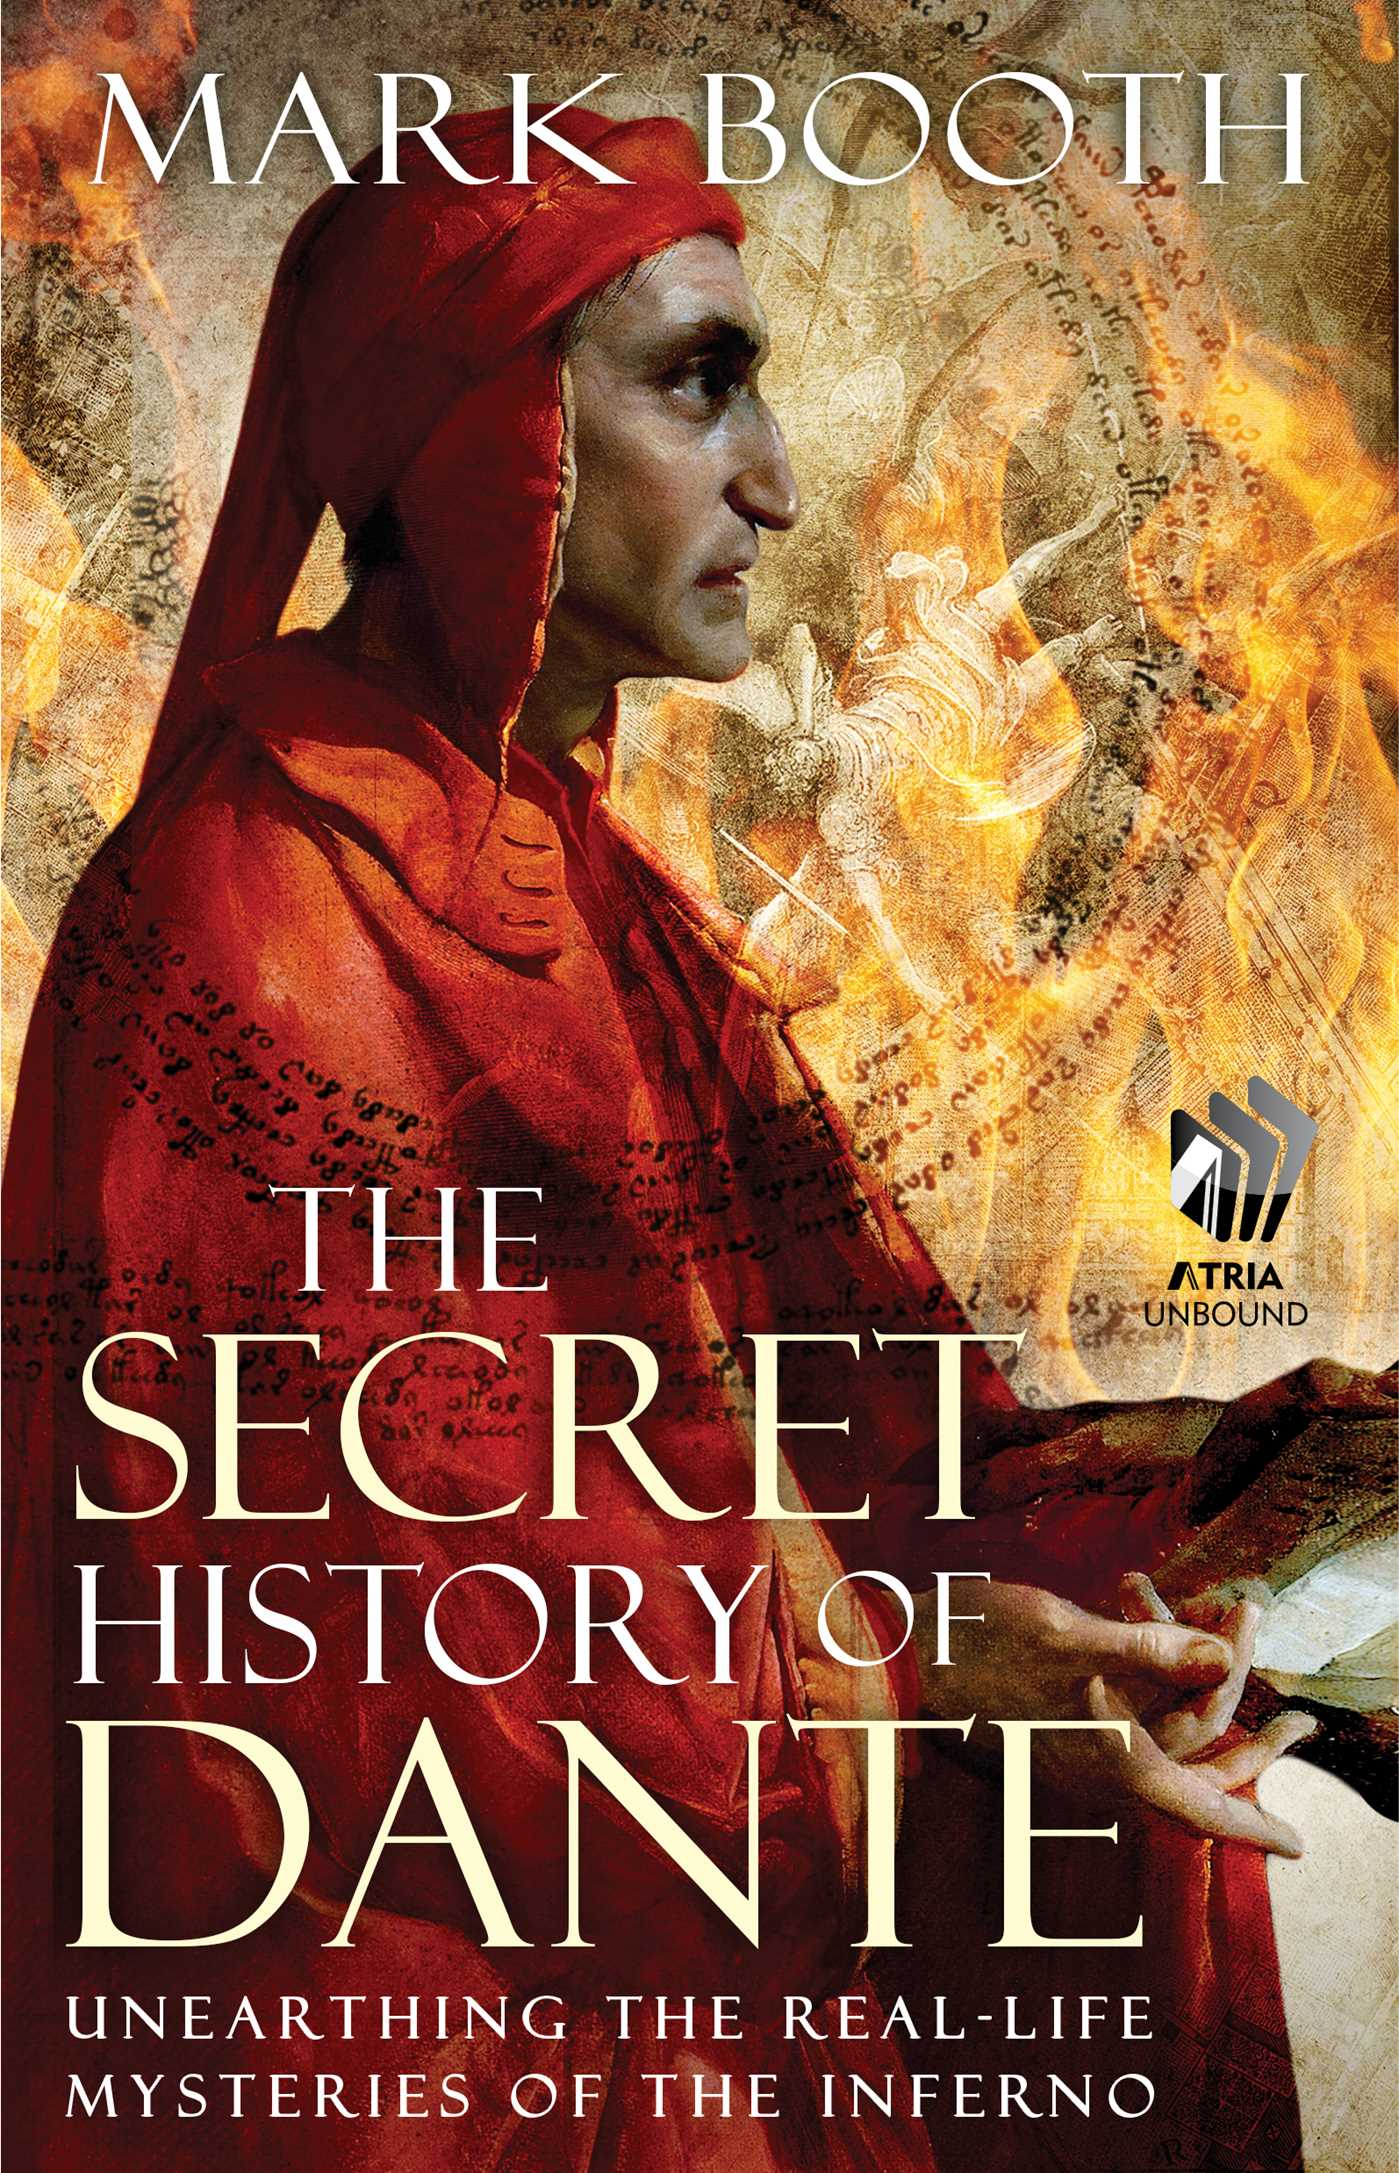 The-secret-history-of-dante-9781476753119_hr